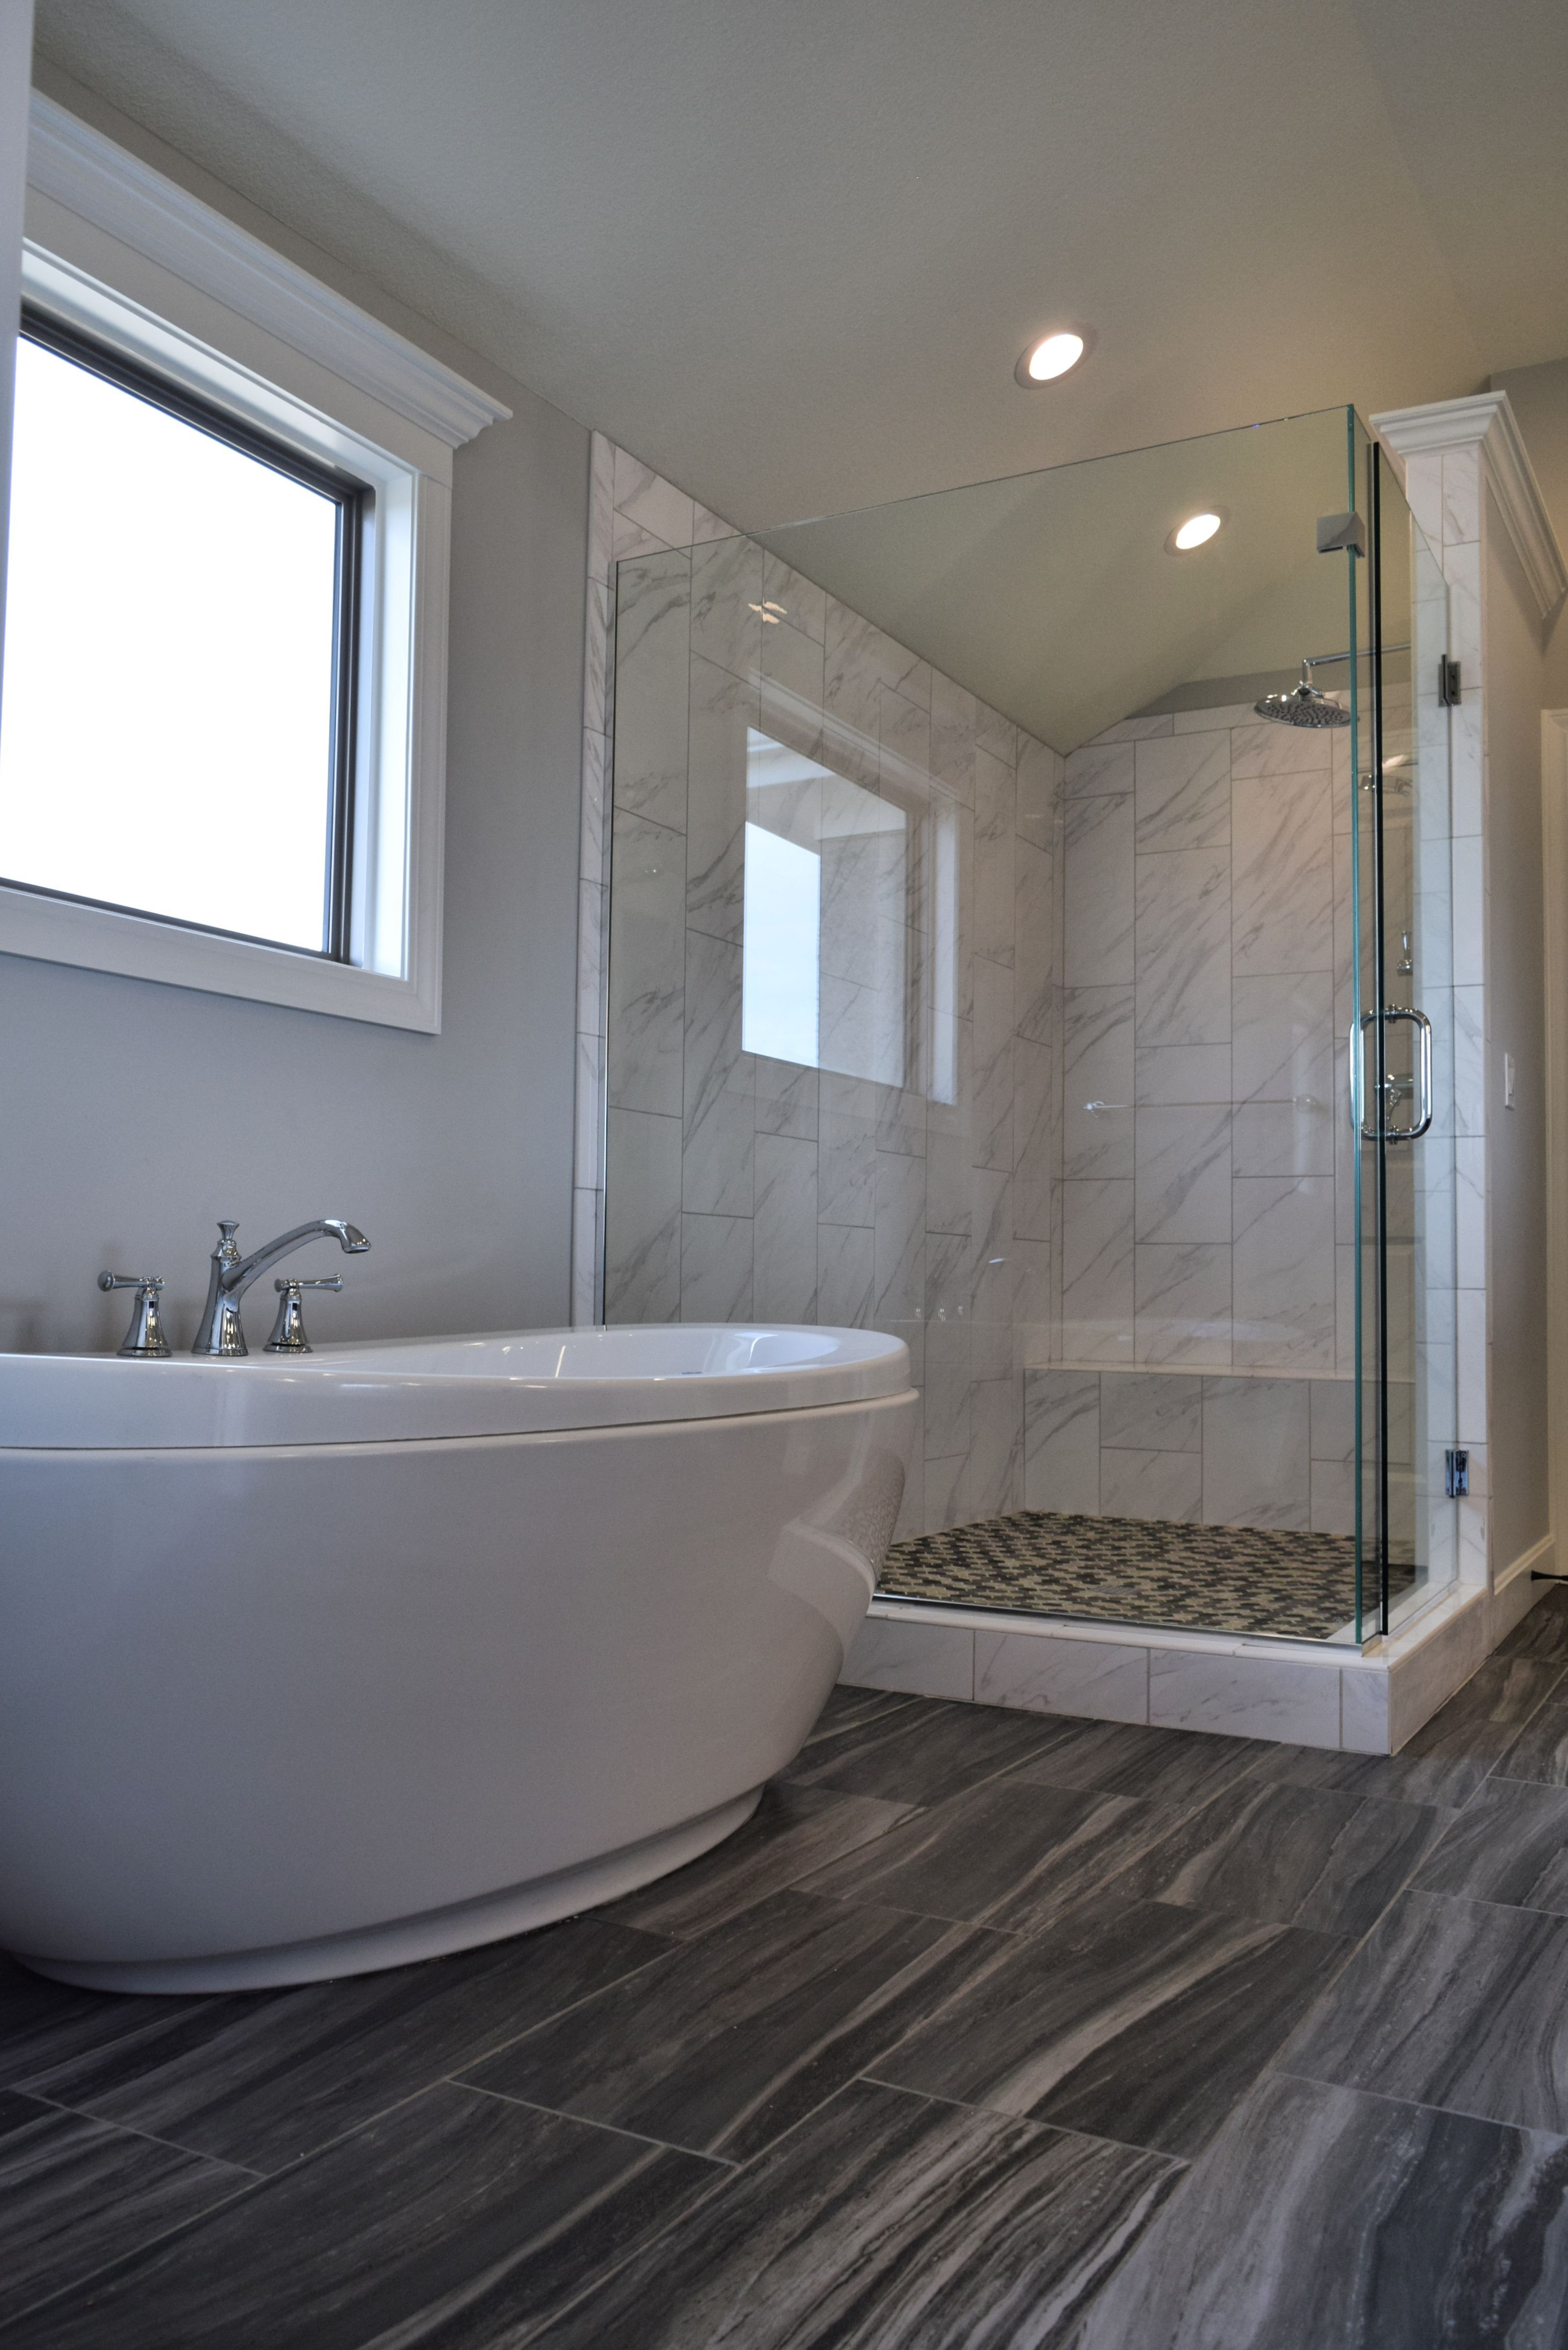 Gorgeous Master Bath Extra Large Walk In Shower Glass Door Jetted Tub And R Dream Bathroom Master Baths Master Bedroom Design Layout Bathroom Remodel Master